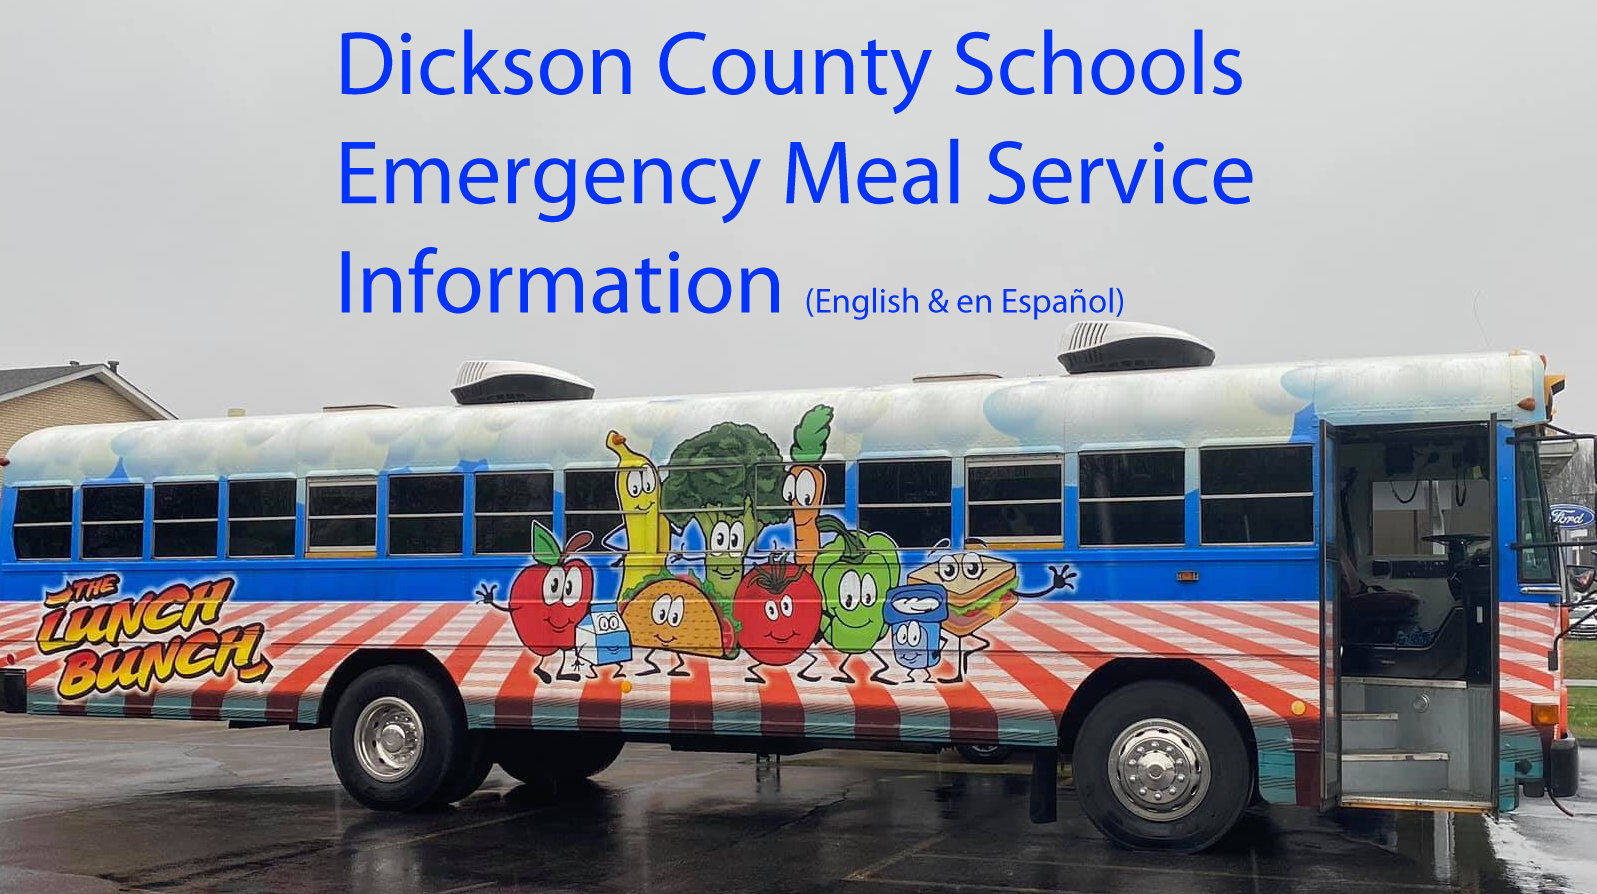 Emergency Meal Services